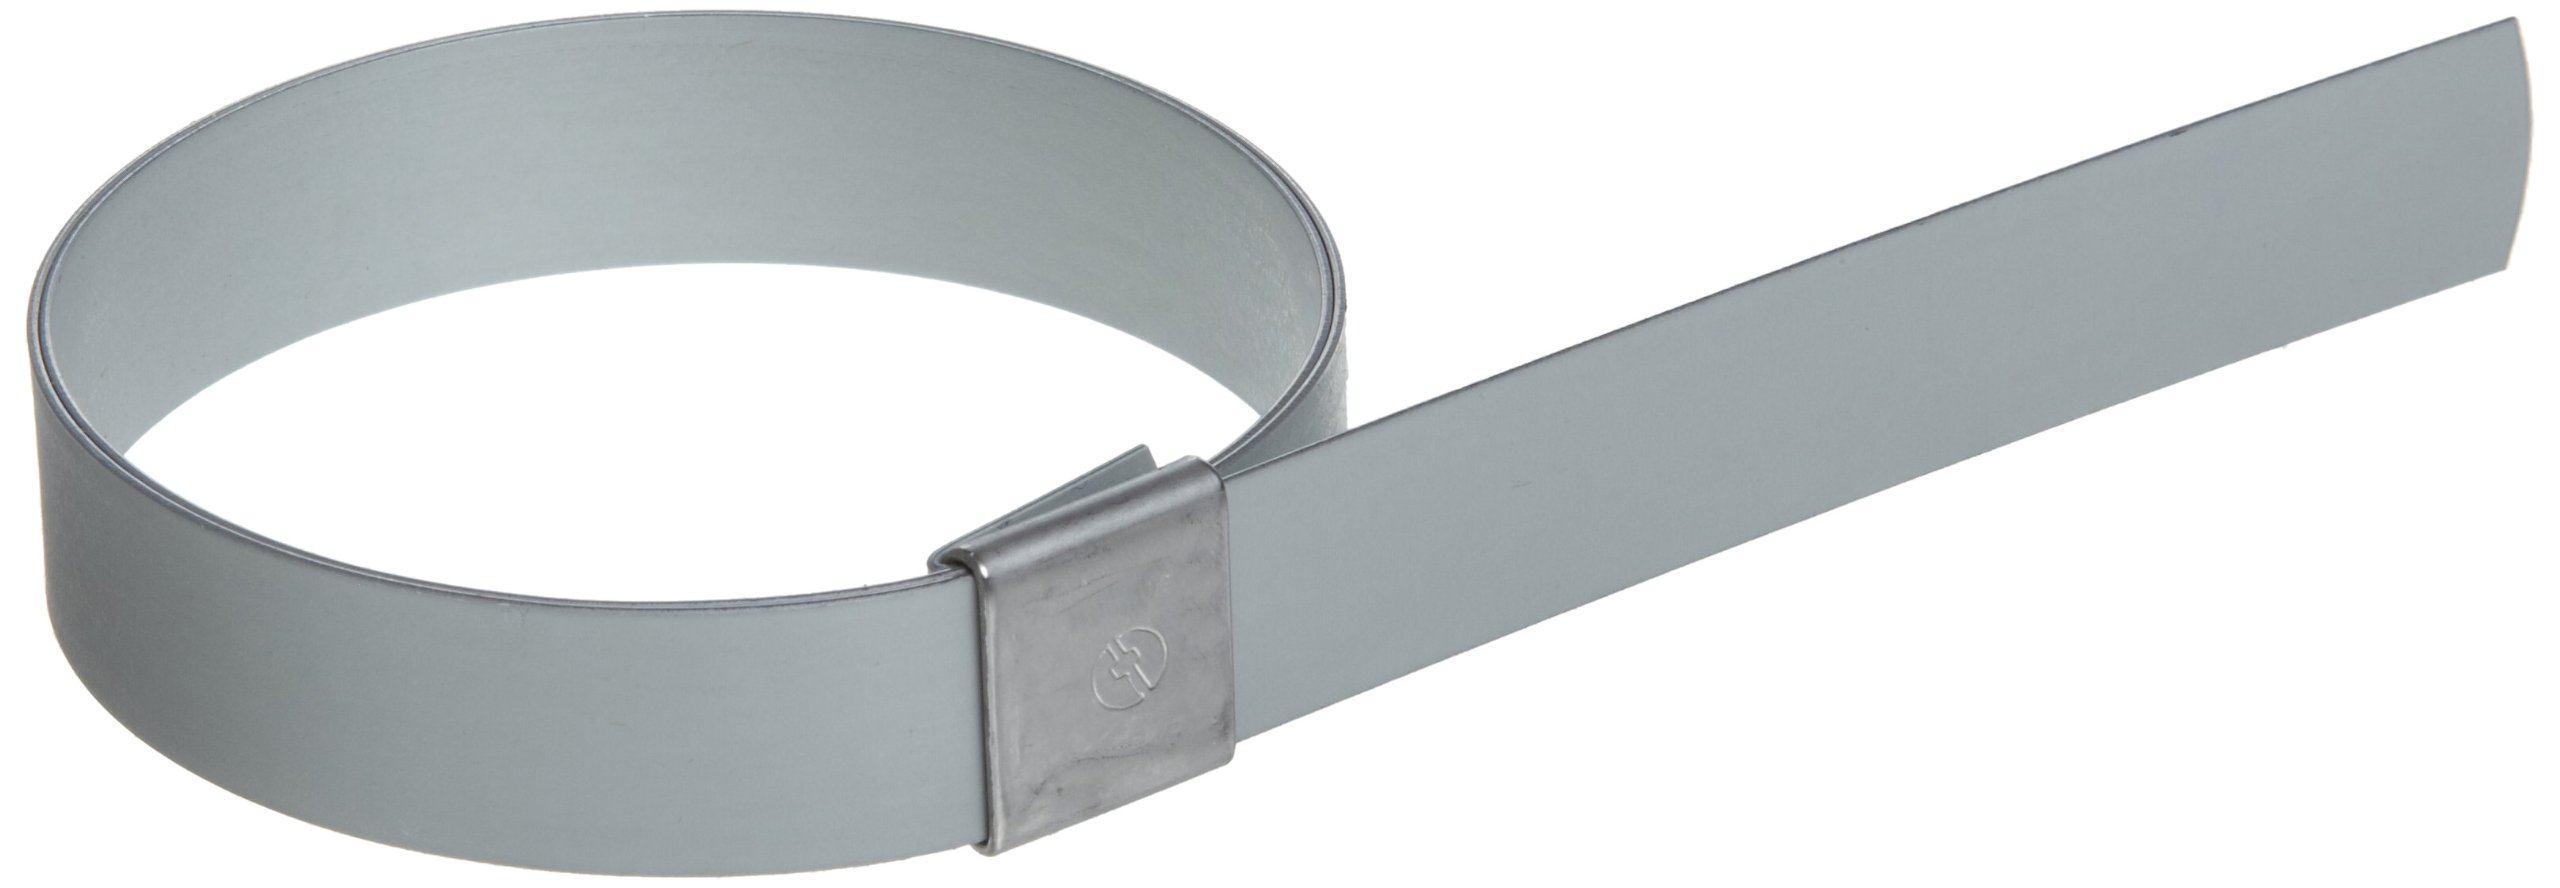 BAND-IT CP0899 5/8'' Wide x 0.025'' Thick 2'' Diameter, Galvanized Carbon Steel Center Punch Clamp (100 Per Box) by Band-It